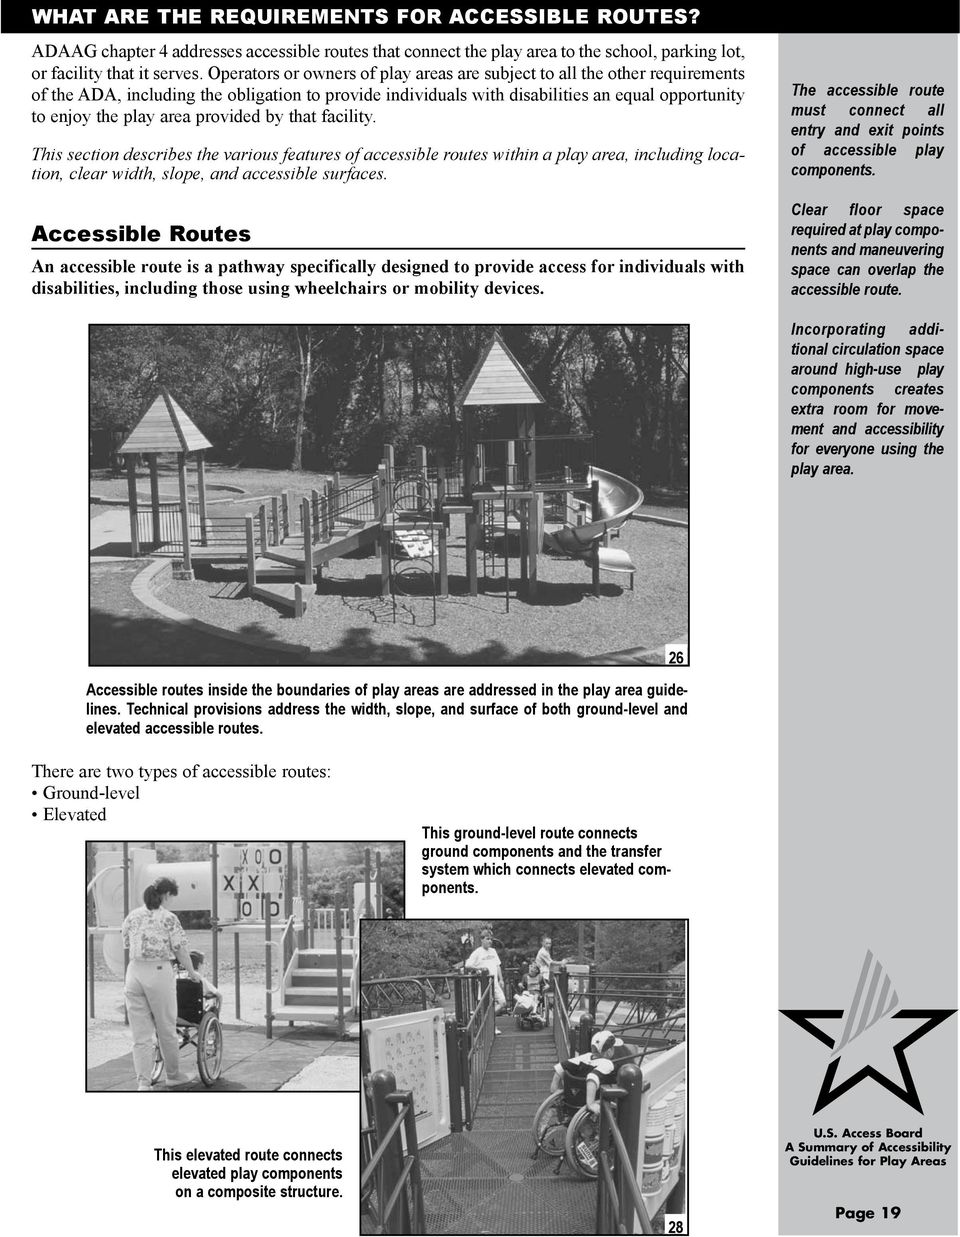 provided by that facility. This section describes the various features of accessible routes within a play area, including location, clear width, slope, and accessible surfaces.